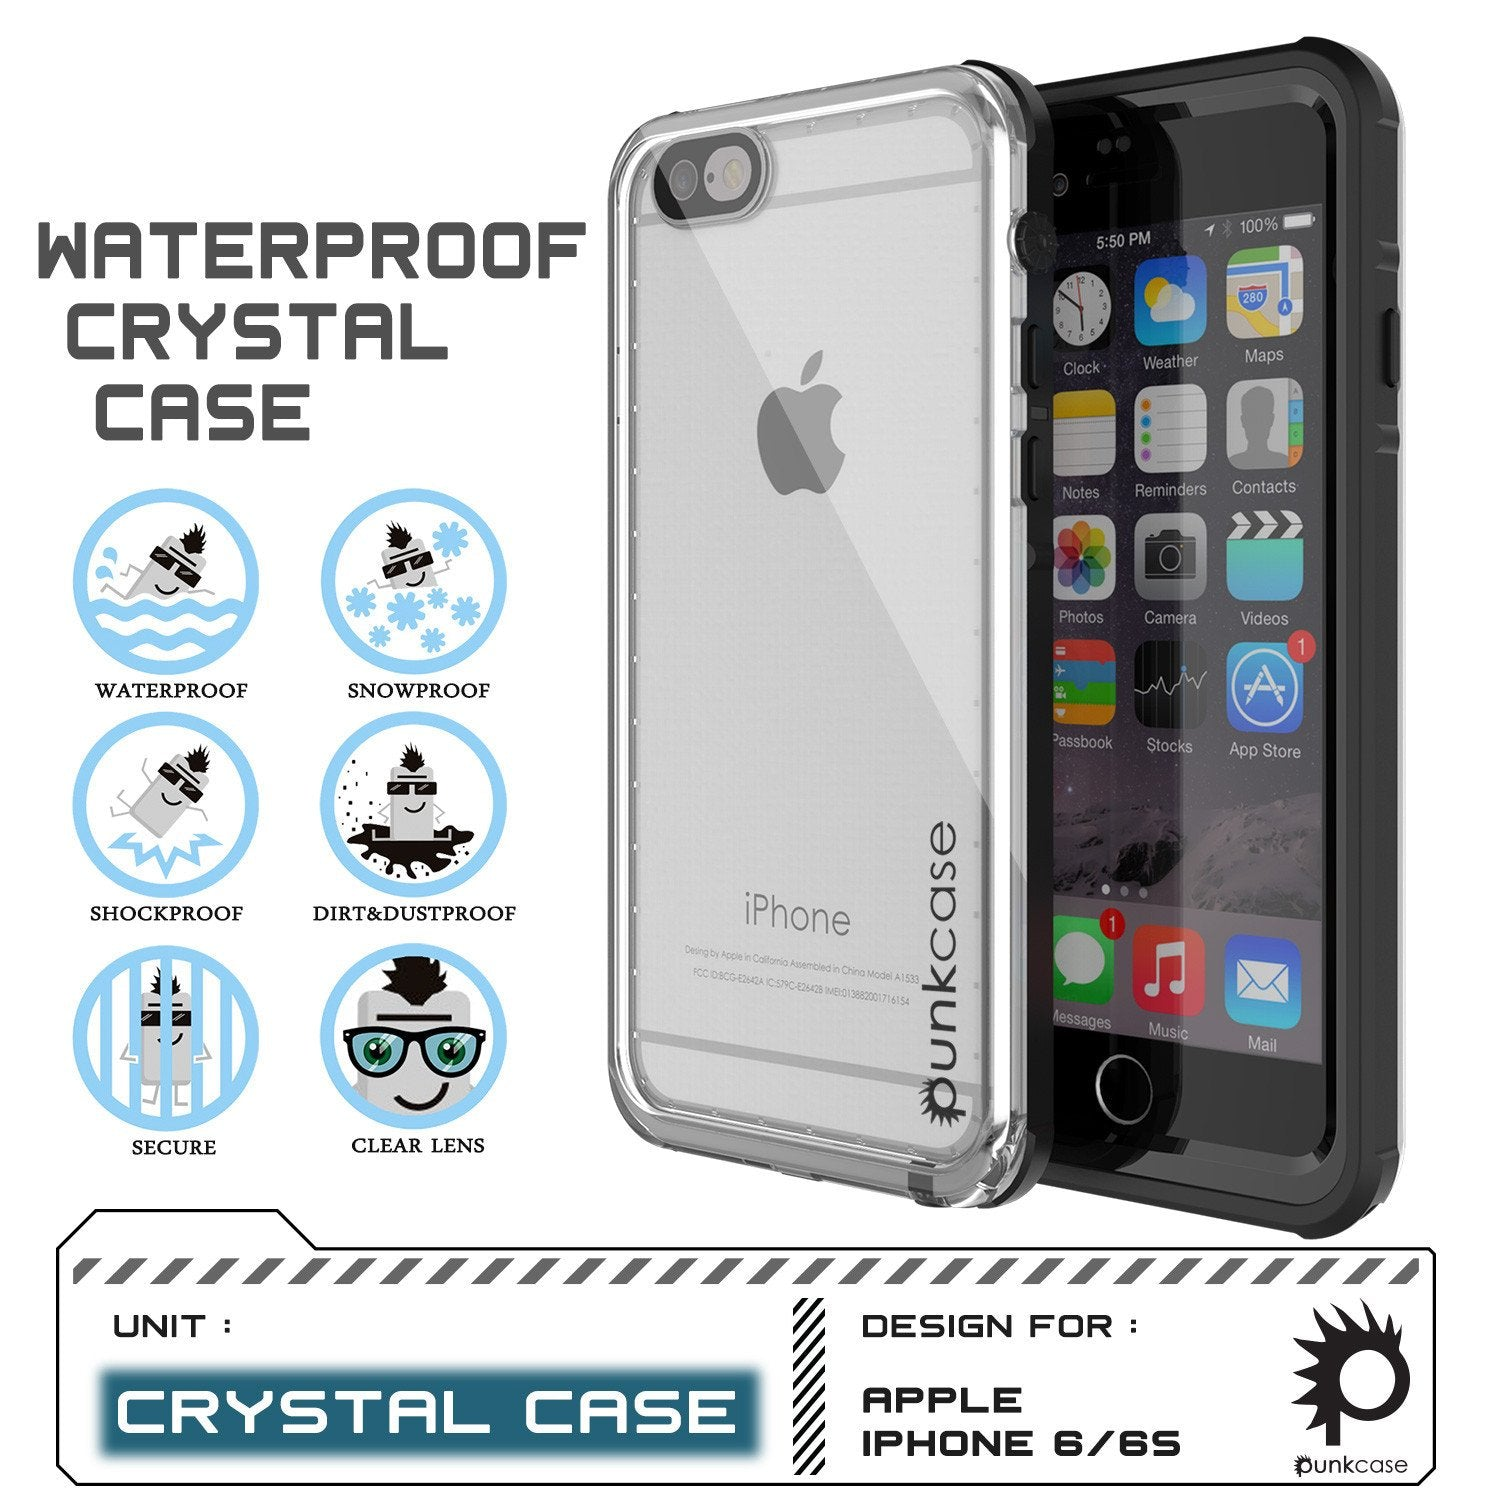 iPhone 6+/6S+ Plus Waterproof Case, PUNKcase CRYSTAL Black W/ Attached Screen Protector | Warranty - PunkCase NZ